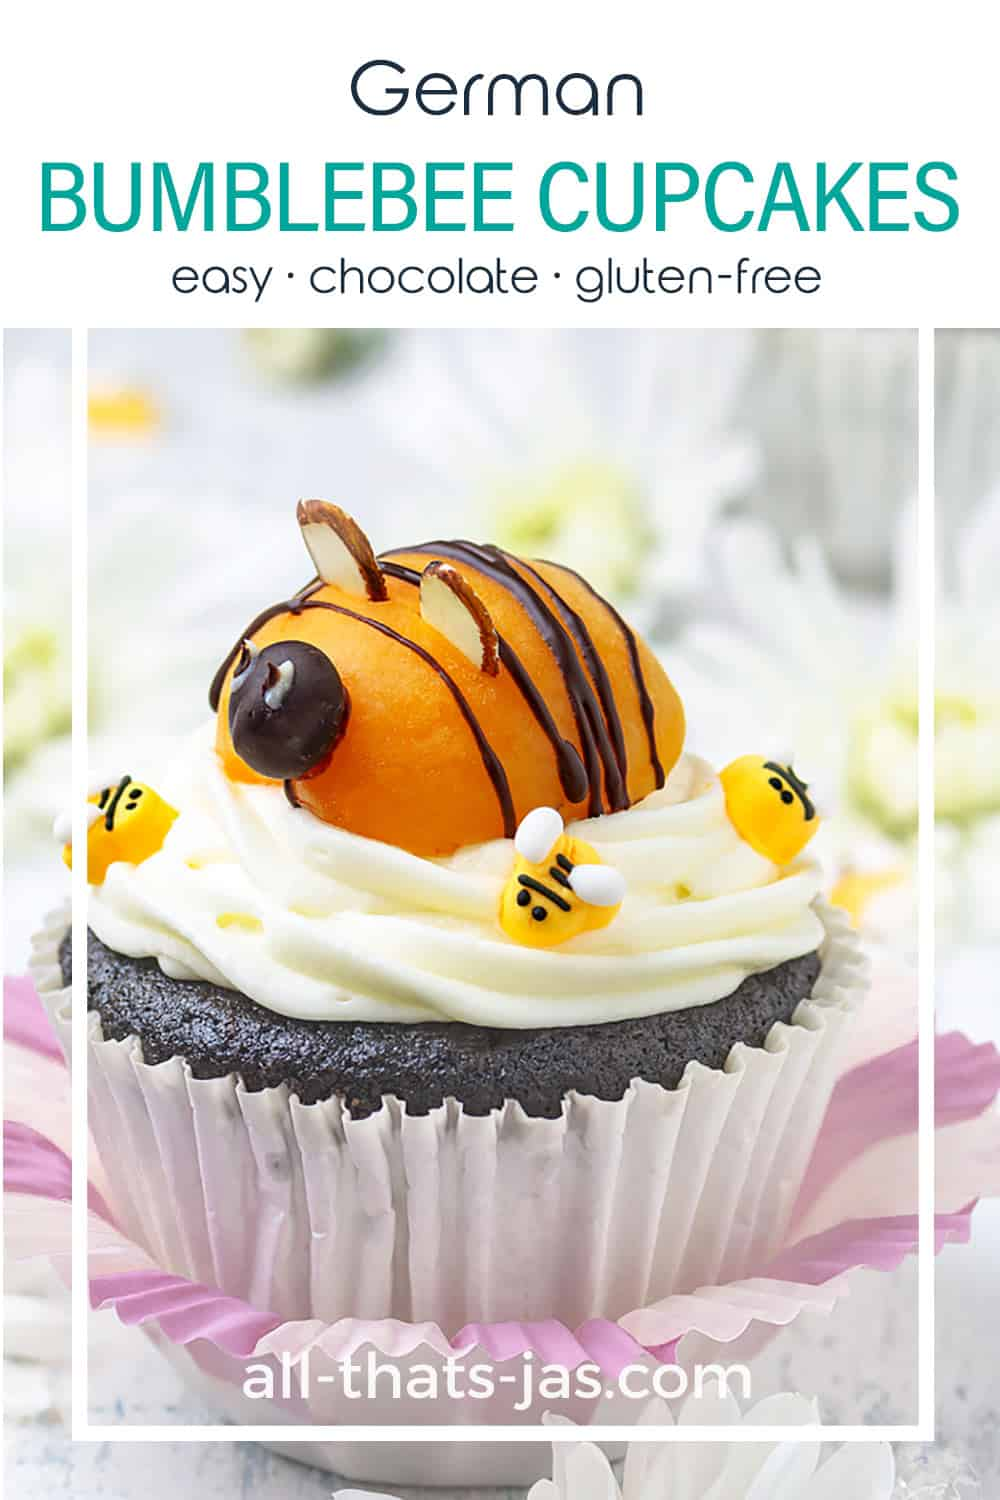 A close up of chocolate cupcake with frosting and apricot bumblebee on top and with text.